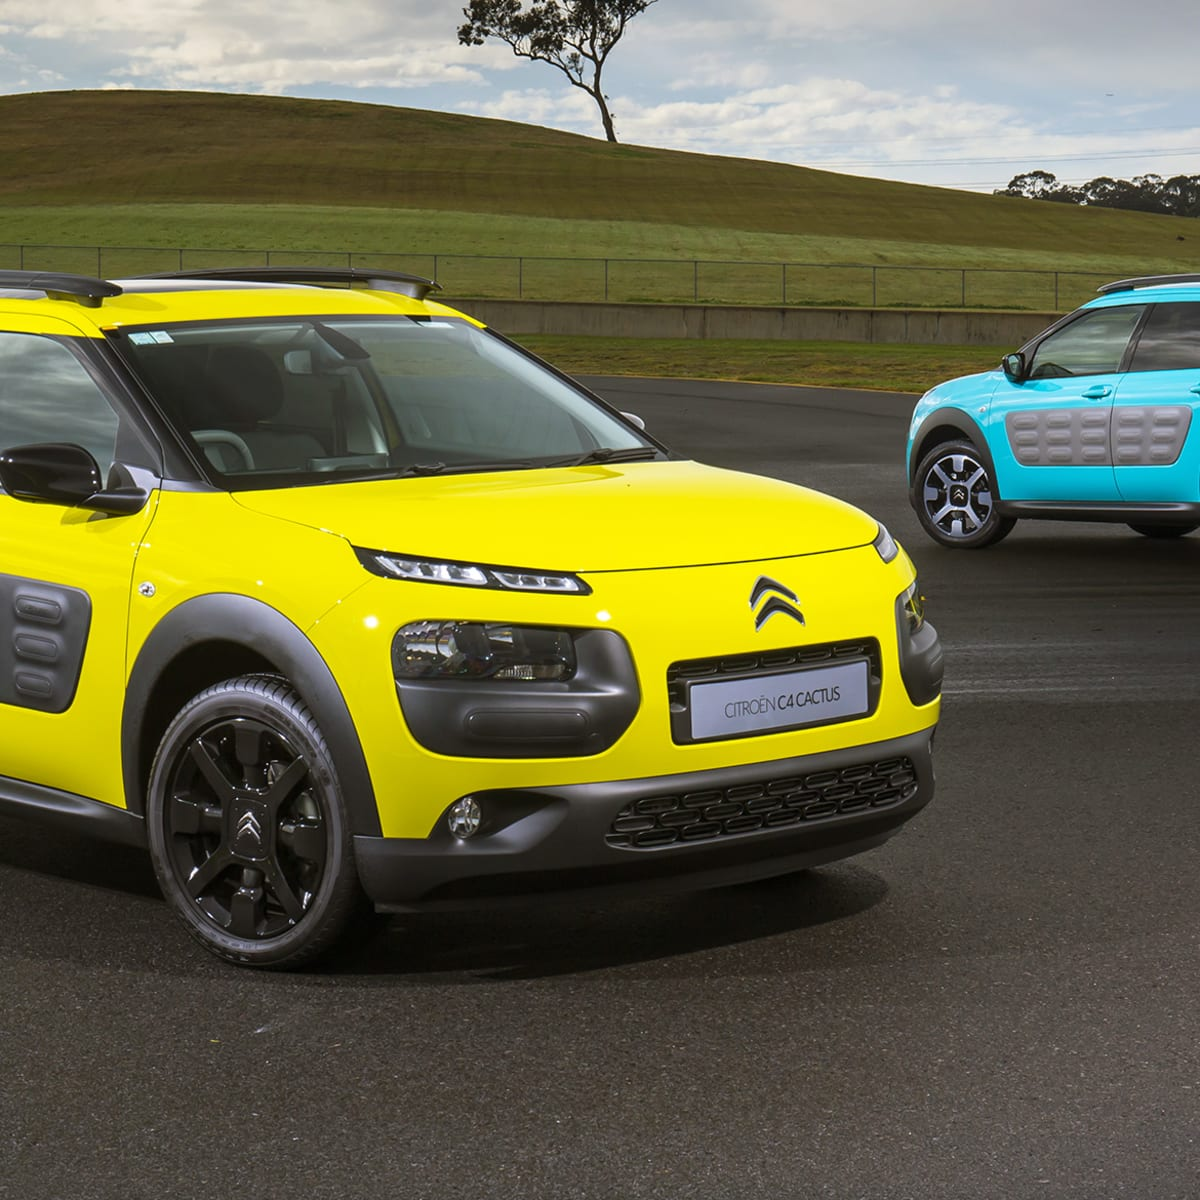 Citroen C4 Cactus pricing and specifications: Funky French SUV from